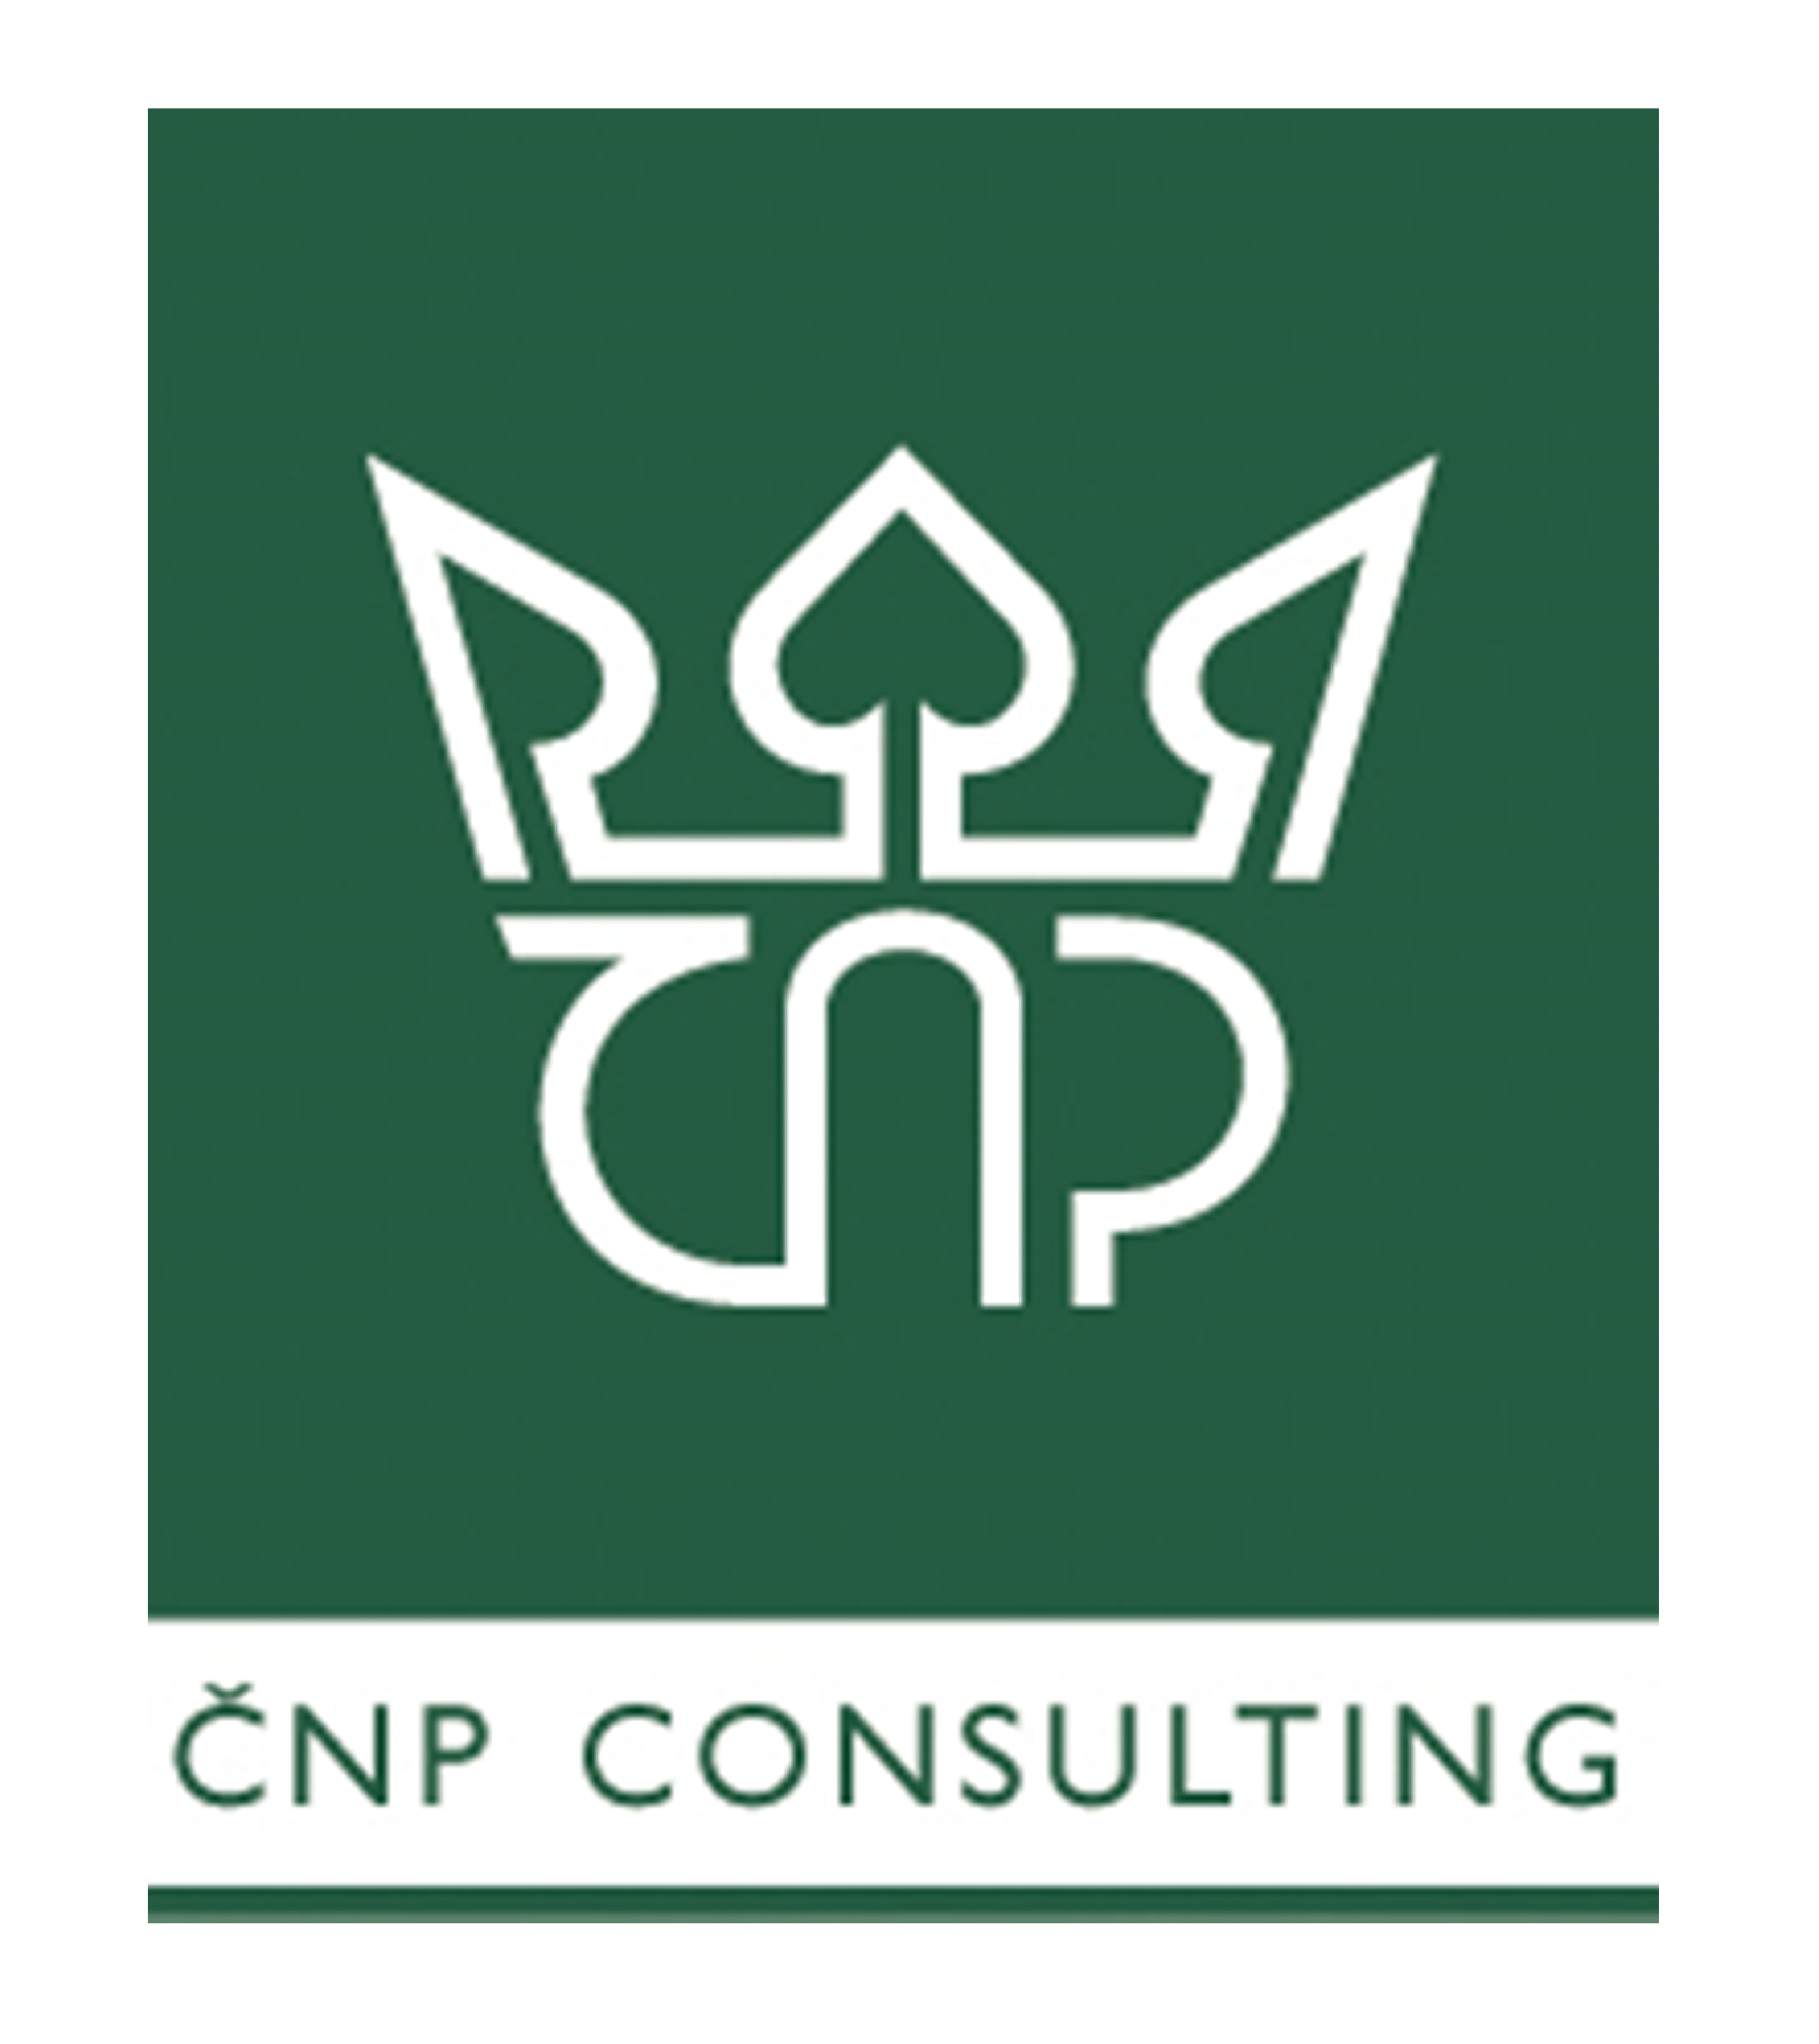 ČNP CONSULTING